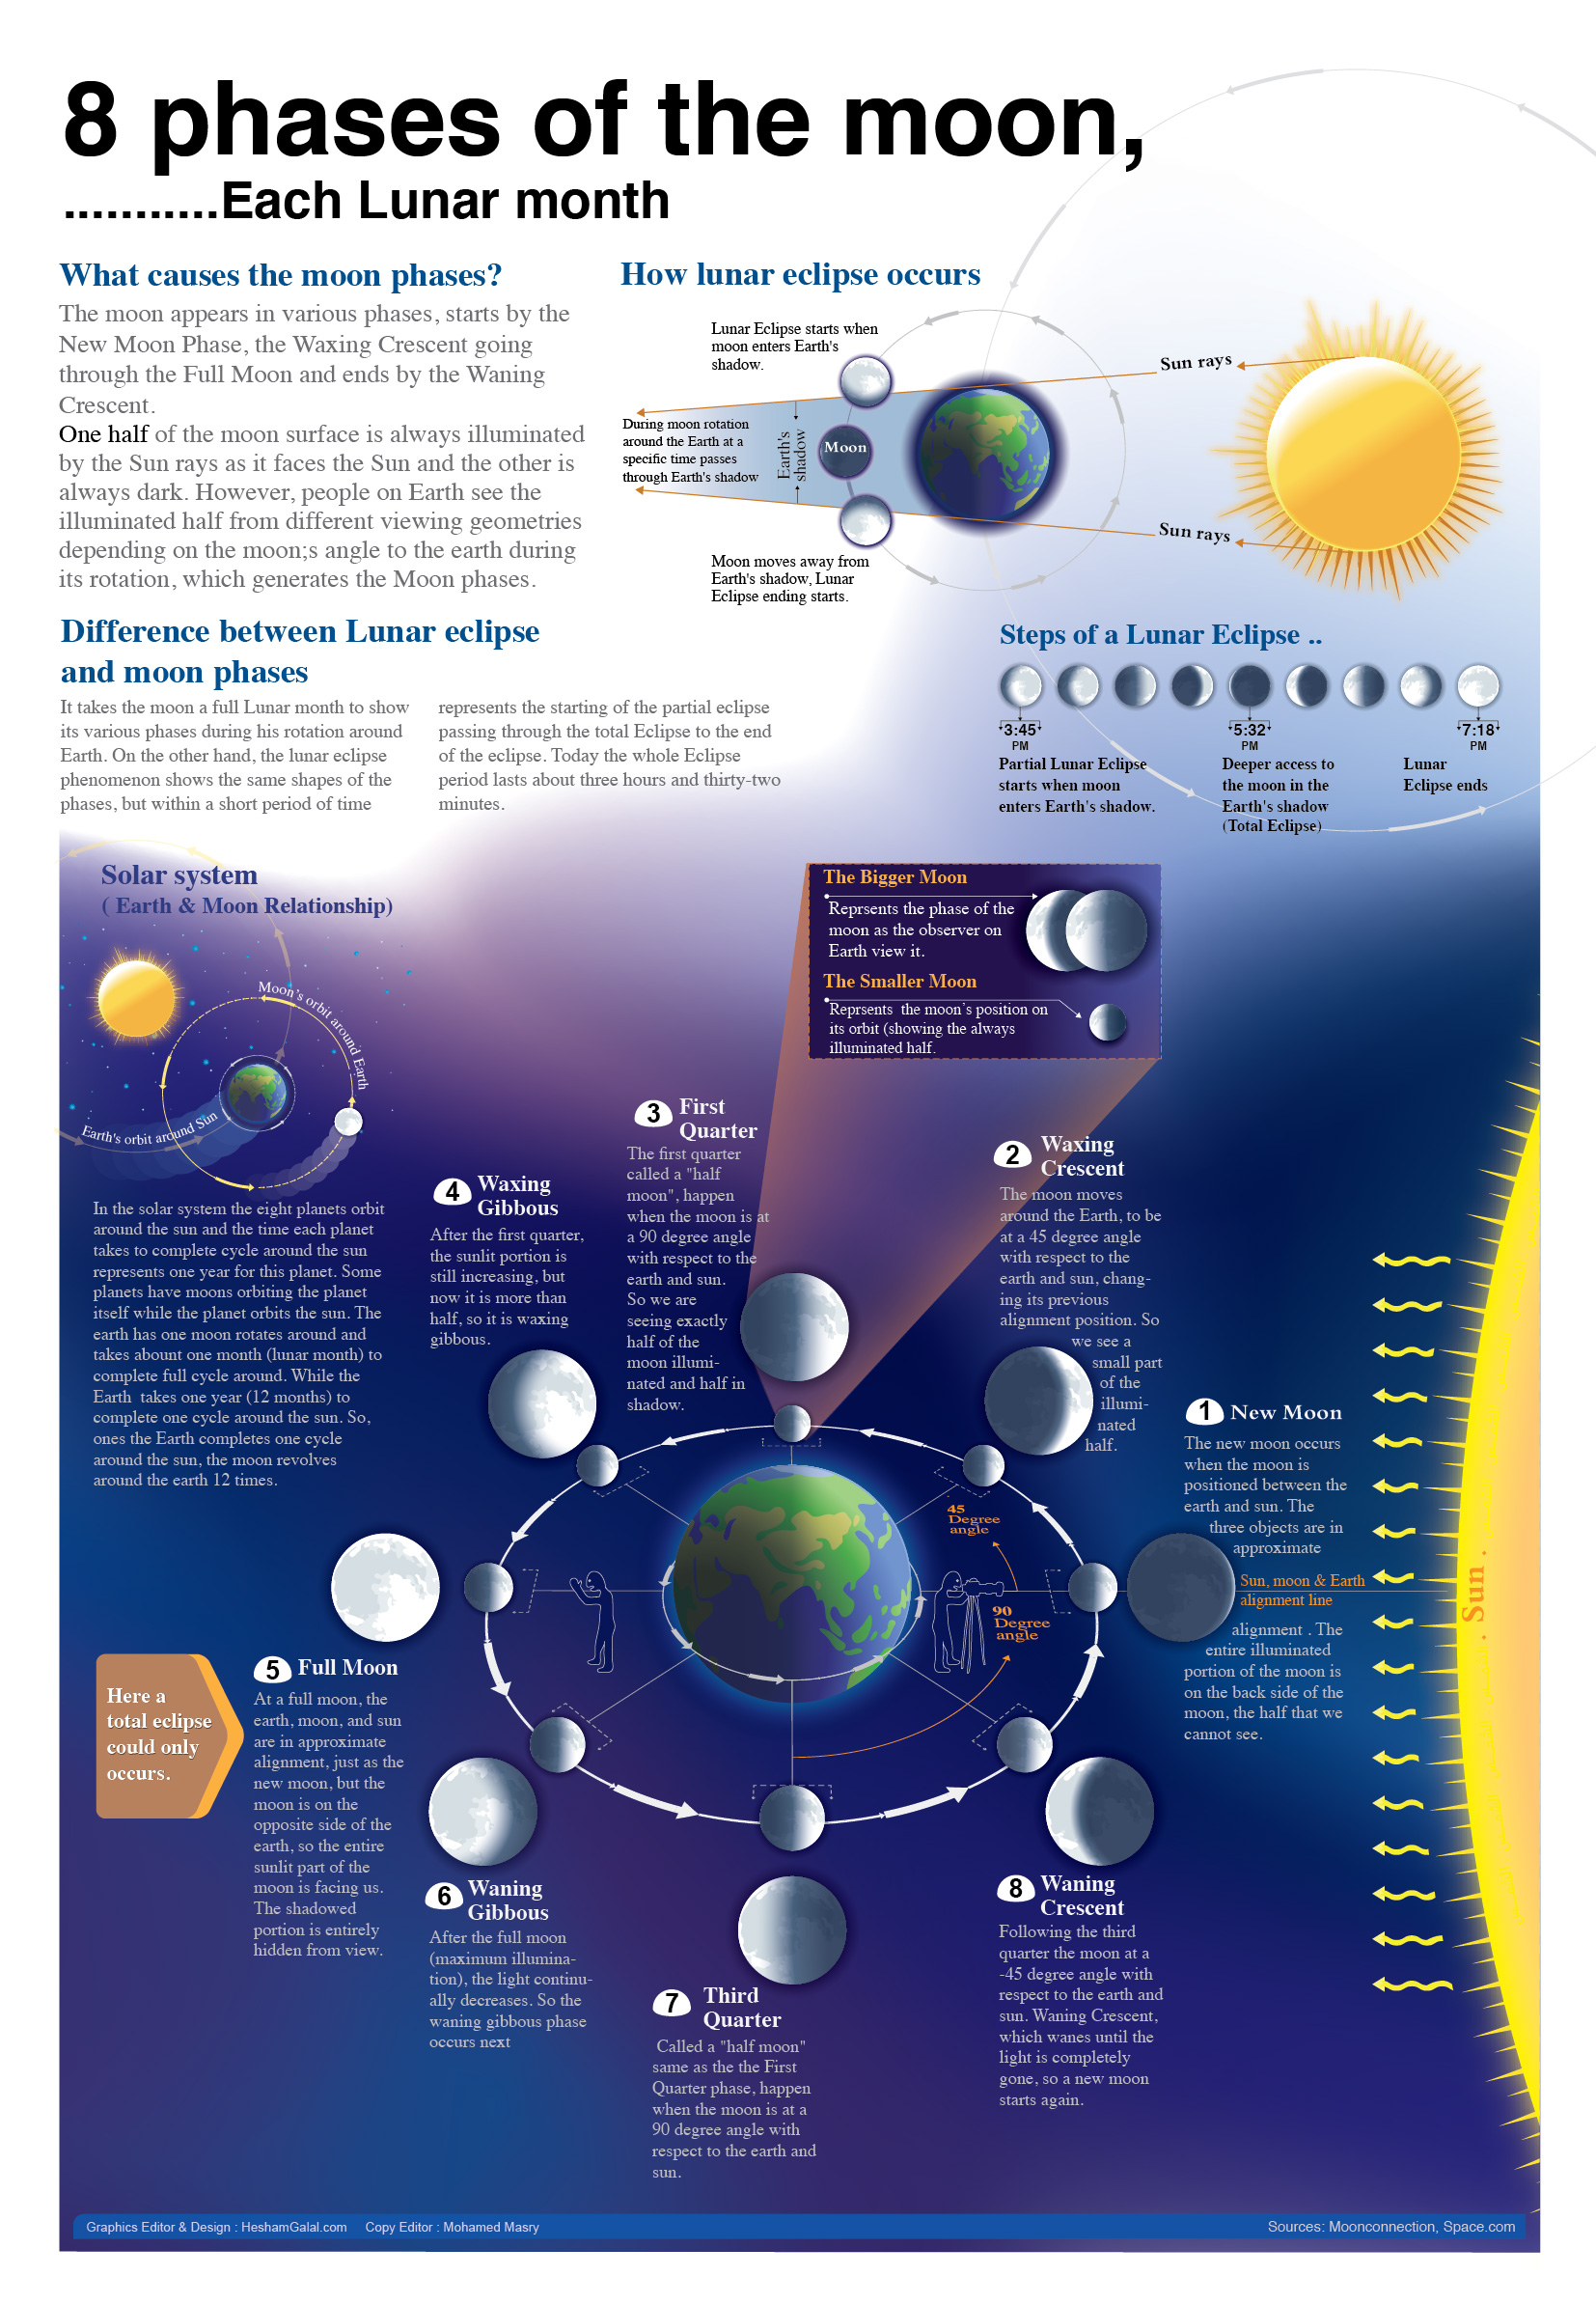 8-phases-of-the-moon_504208331ee4f